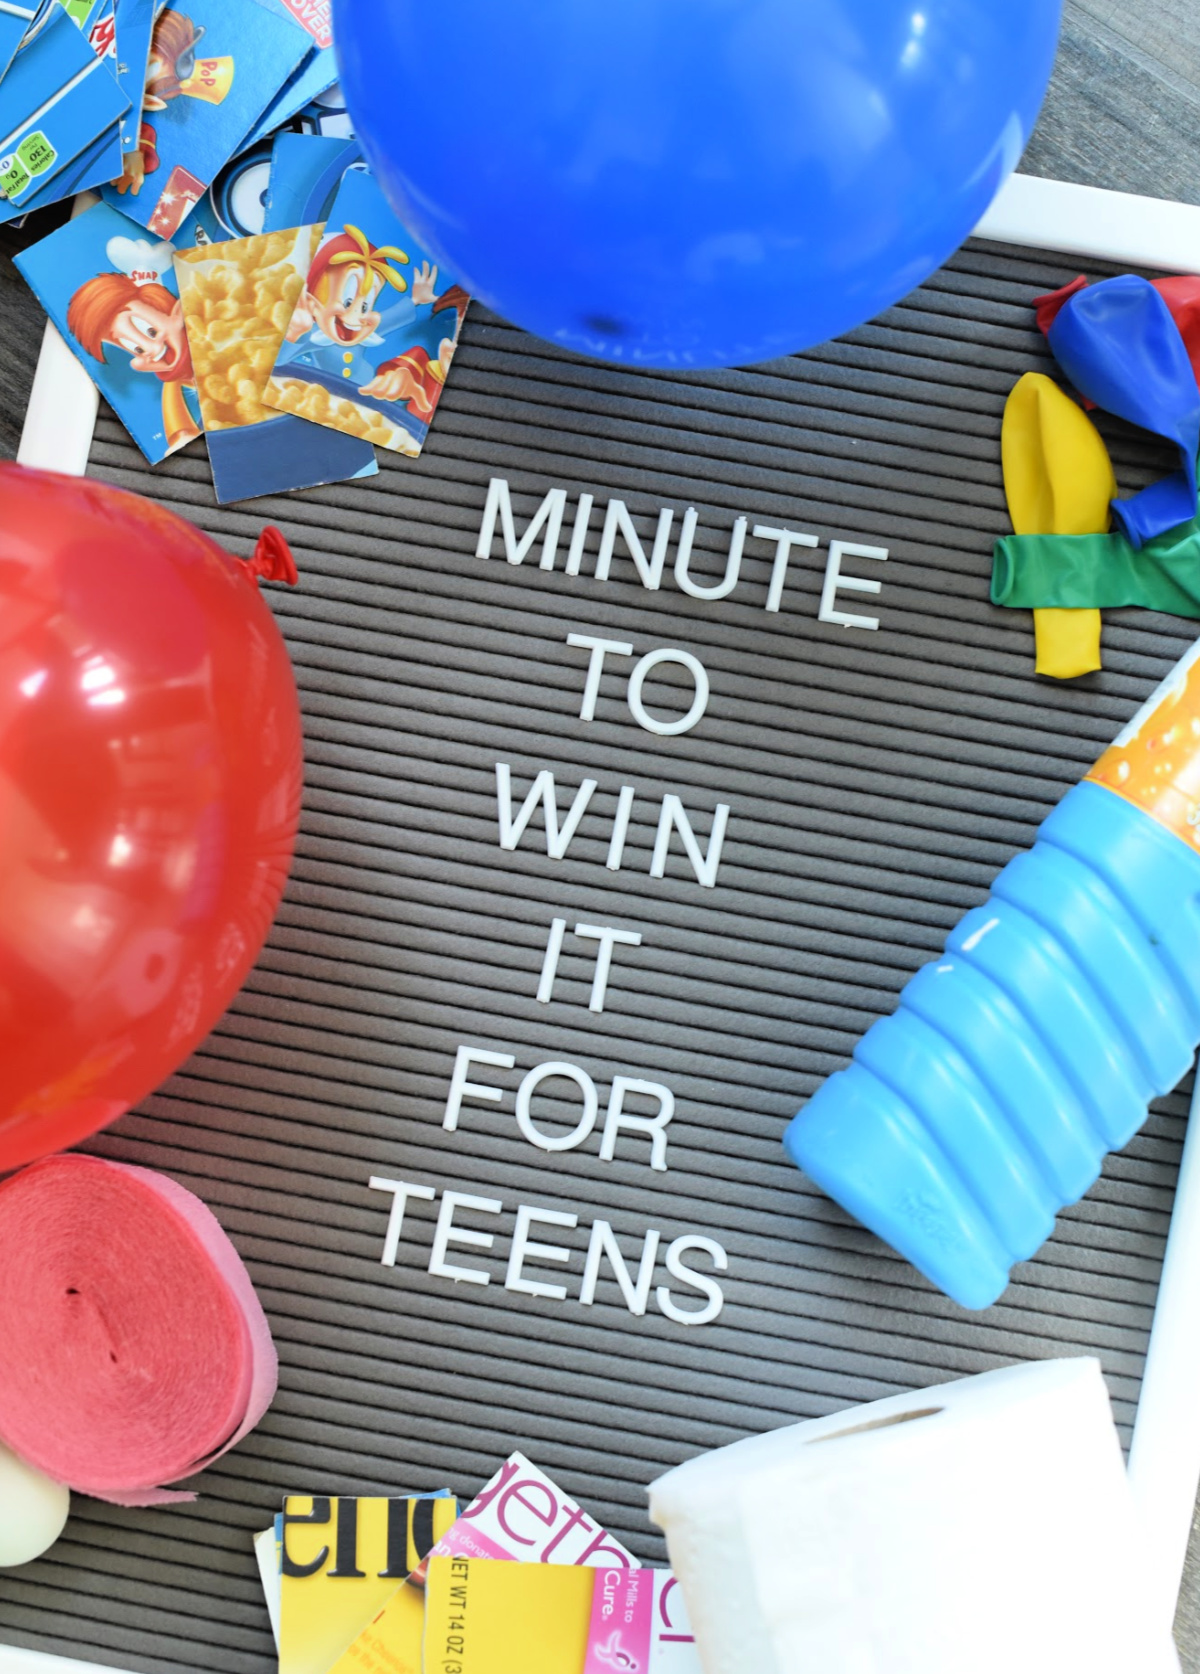 Minute to win it games for teens-These fun minute to win it games are great for teens, preteens, kids or even adults. They are easy to pull off and are creative and fun! #partygames #games #minutetowinit #birthdaygame #party